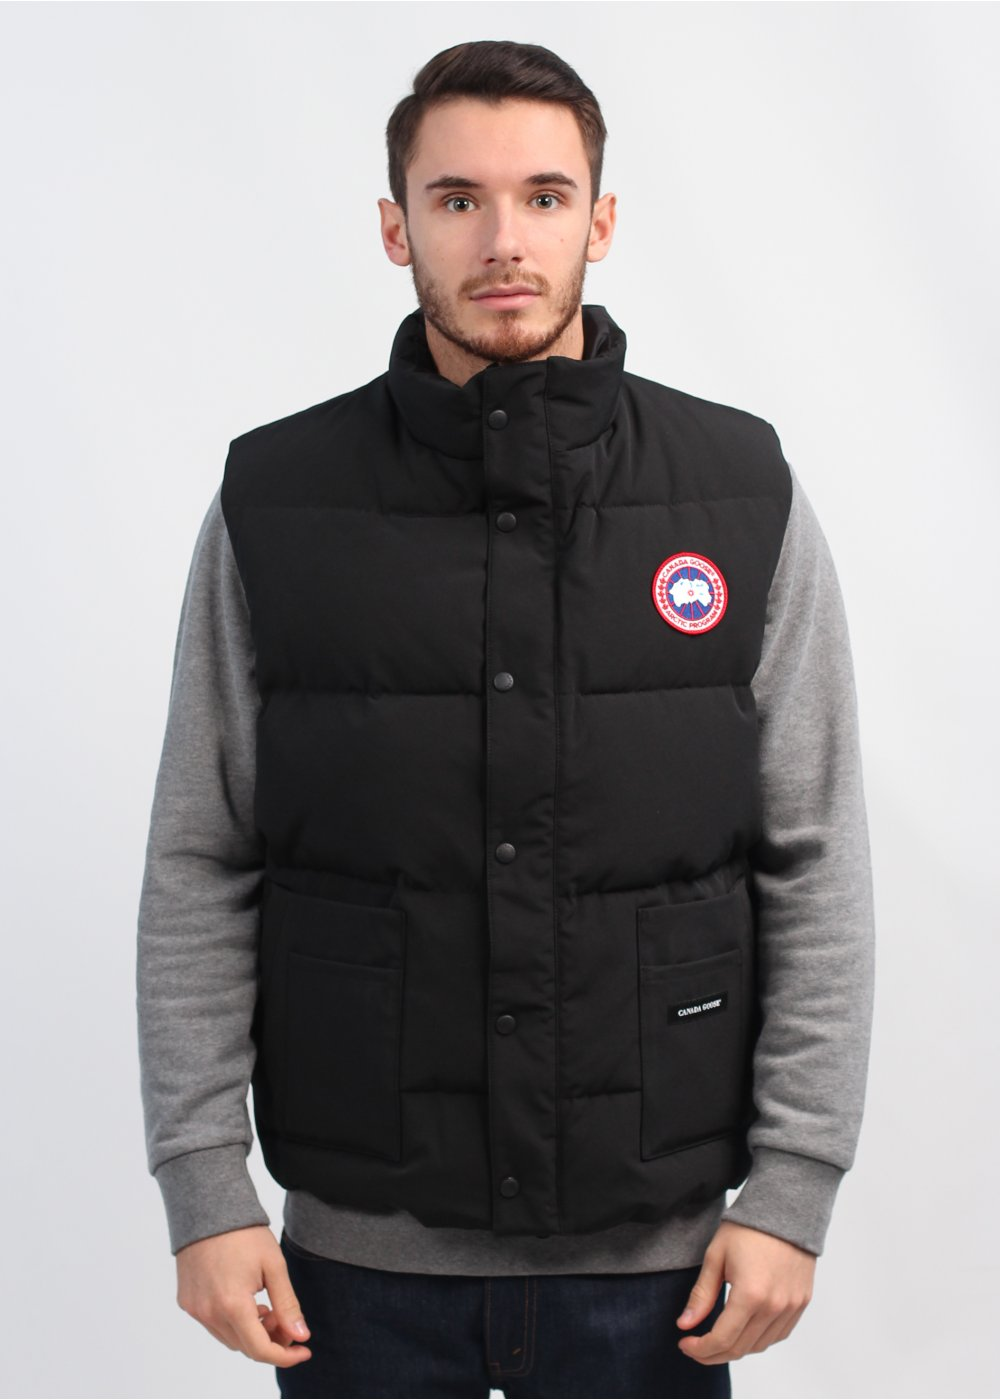 Canada Goose expedition parka sale fake - Top Brand Canada Goose Outlet Store Fake High Quality Replicas At ...